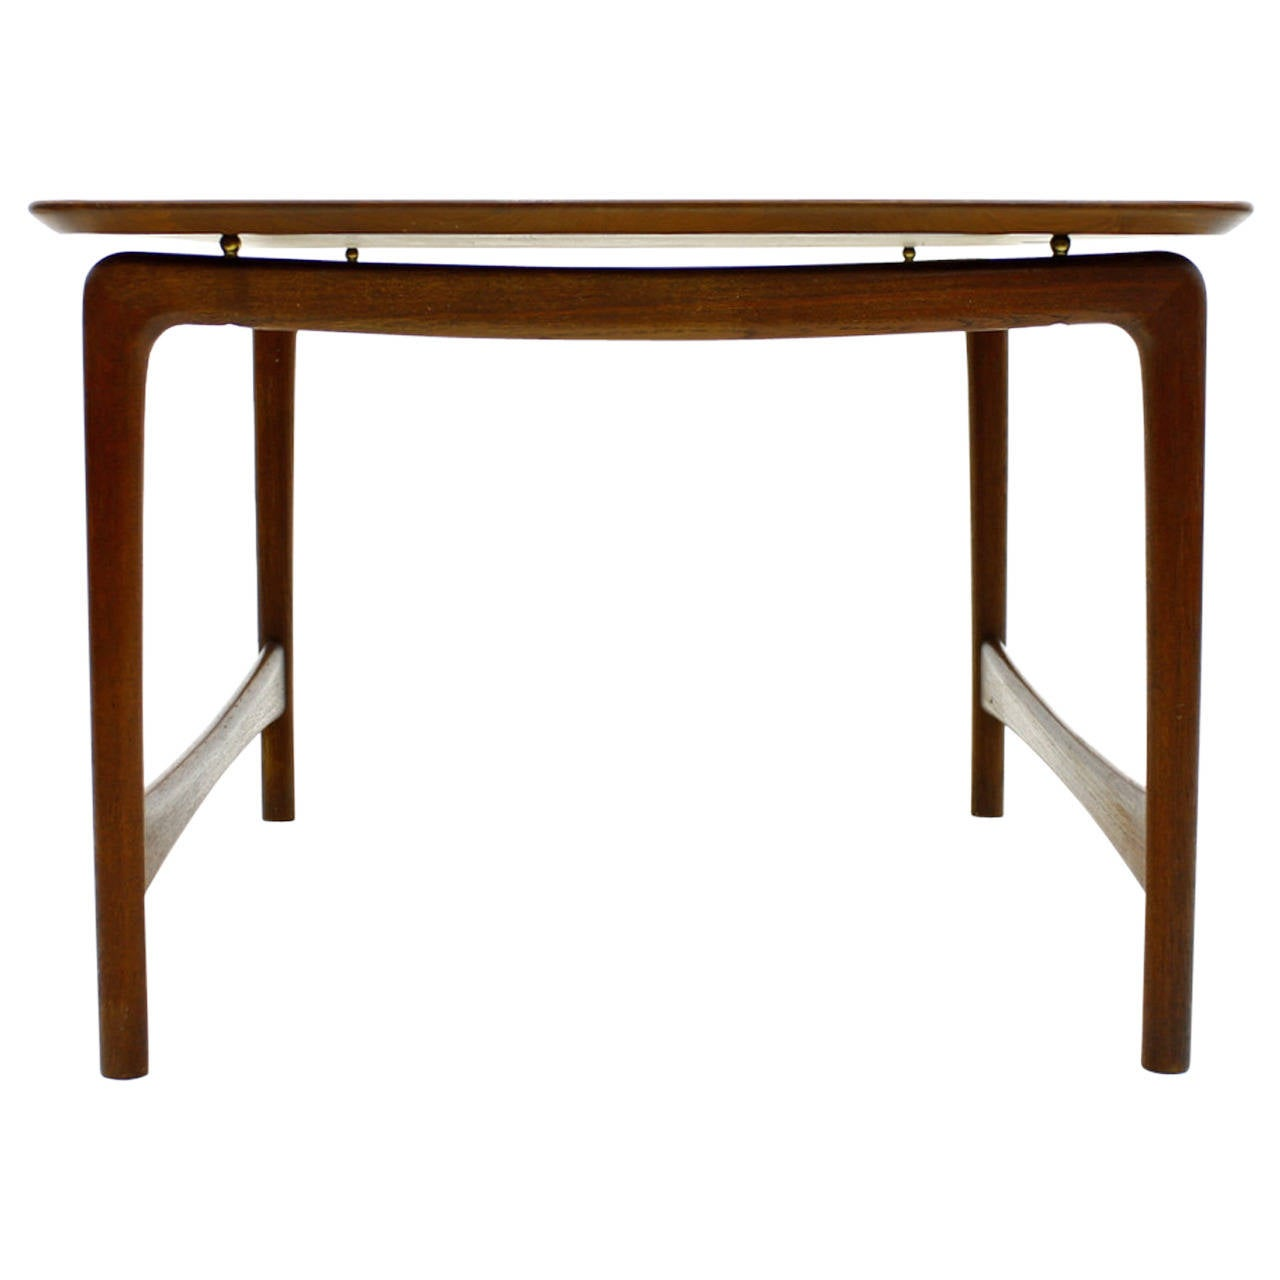 Rare Peter Hvidt and Orla M248lgaard Nielsen Coffee Table  : 2630042l from www.1stdibs.com size 1280 x 1280 jpeg 57kB